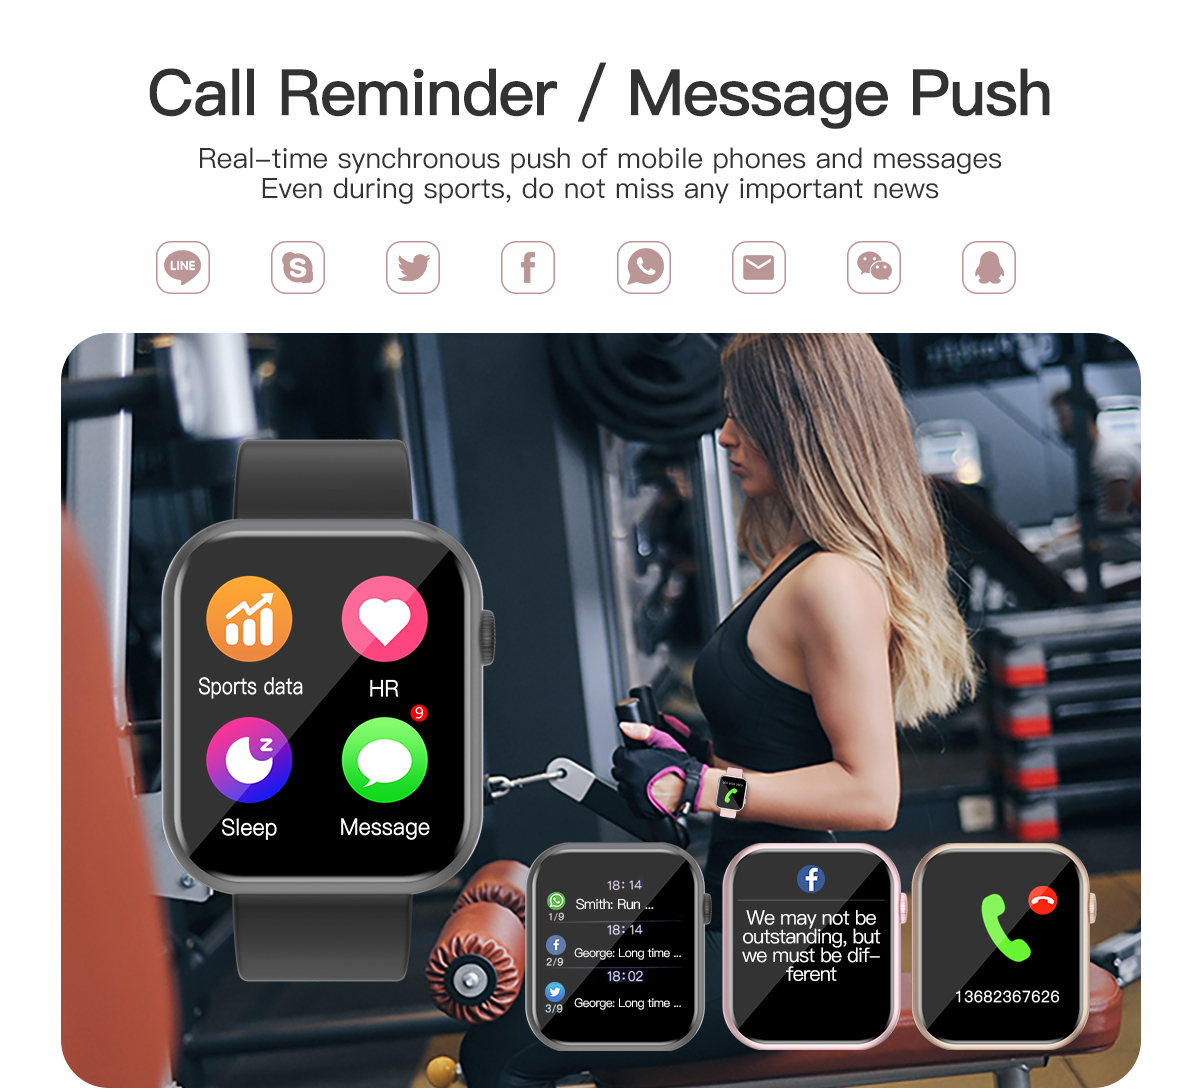 H7c1a07cdb9be41e1b586c8b63055bcaaI COLMI P9 Smart Watch Men Woman Full Smartwatch Built-in game IP67 waterproof Heart Rate Sleep Monitor For iOS Android phone